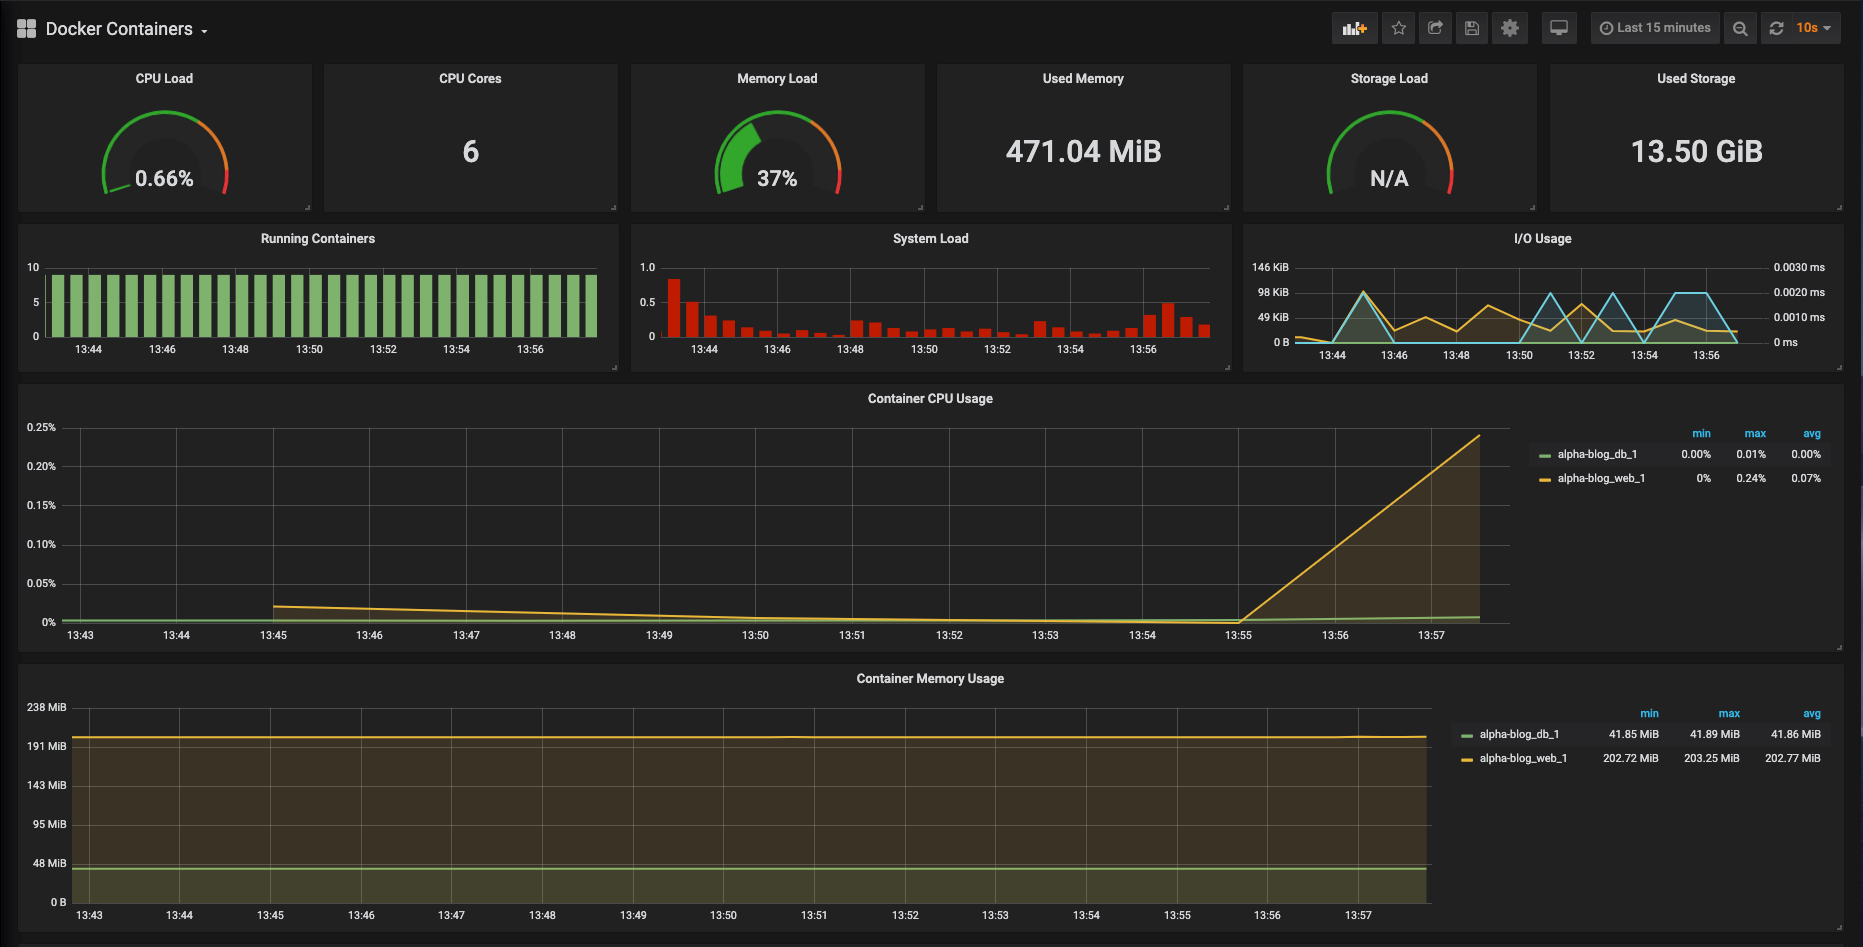 Docker Containers Dashboard